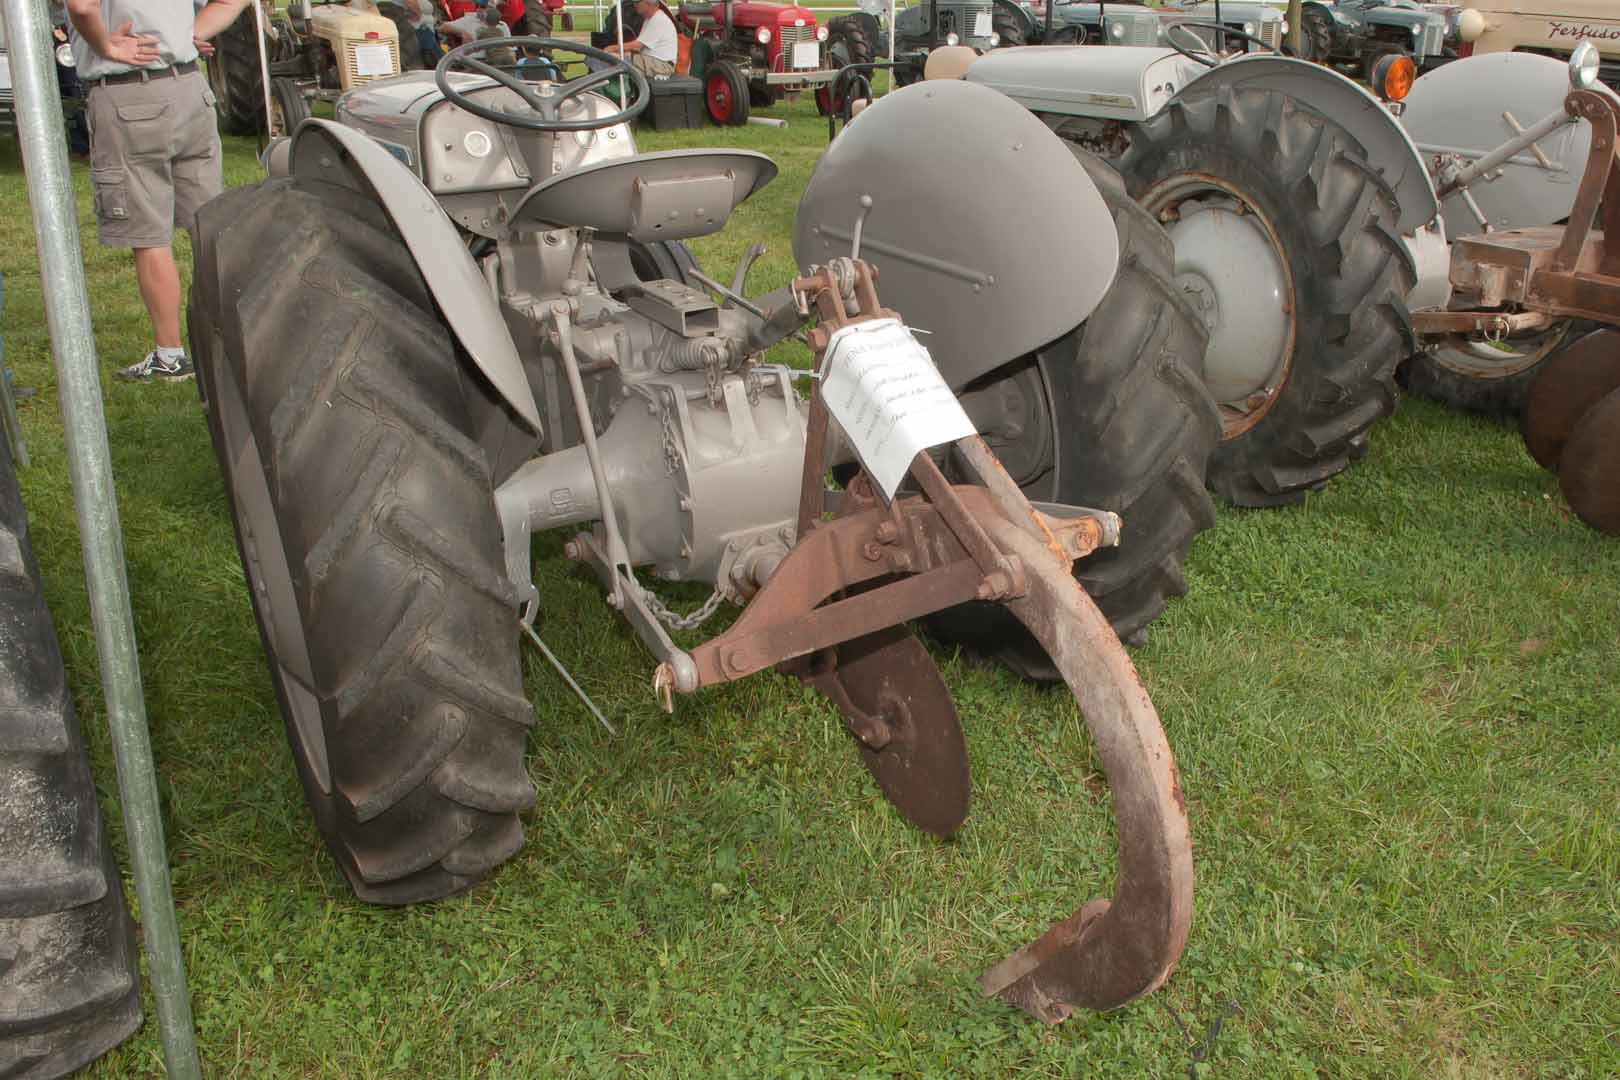 1950 TO-20 SN TO-16476 owned by Henry and Pat Graham of Troy, MO.  Implement is a Ferguson Subsoiler.